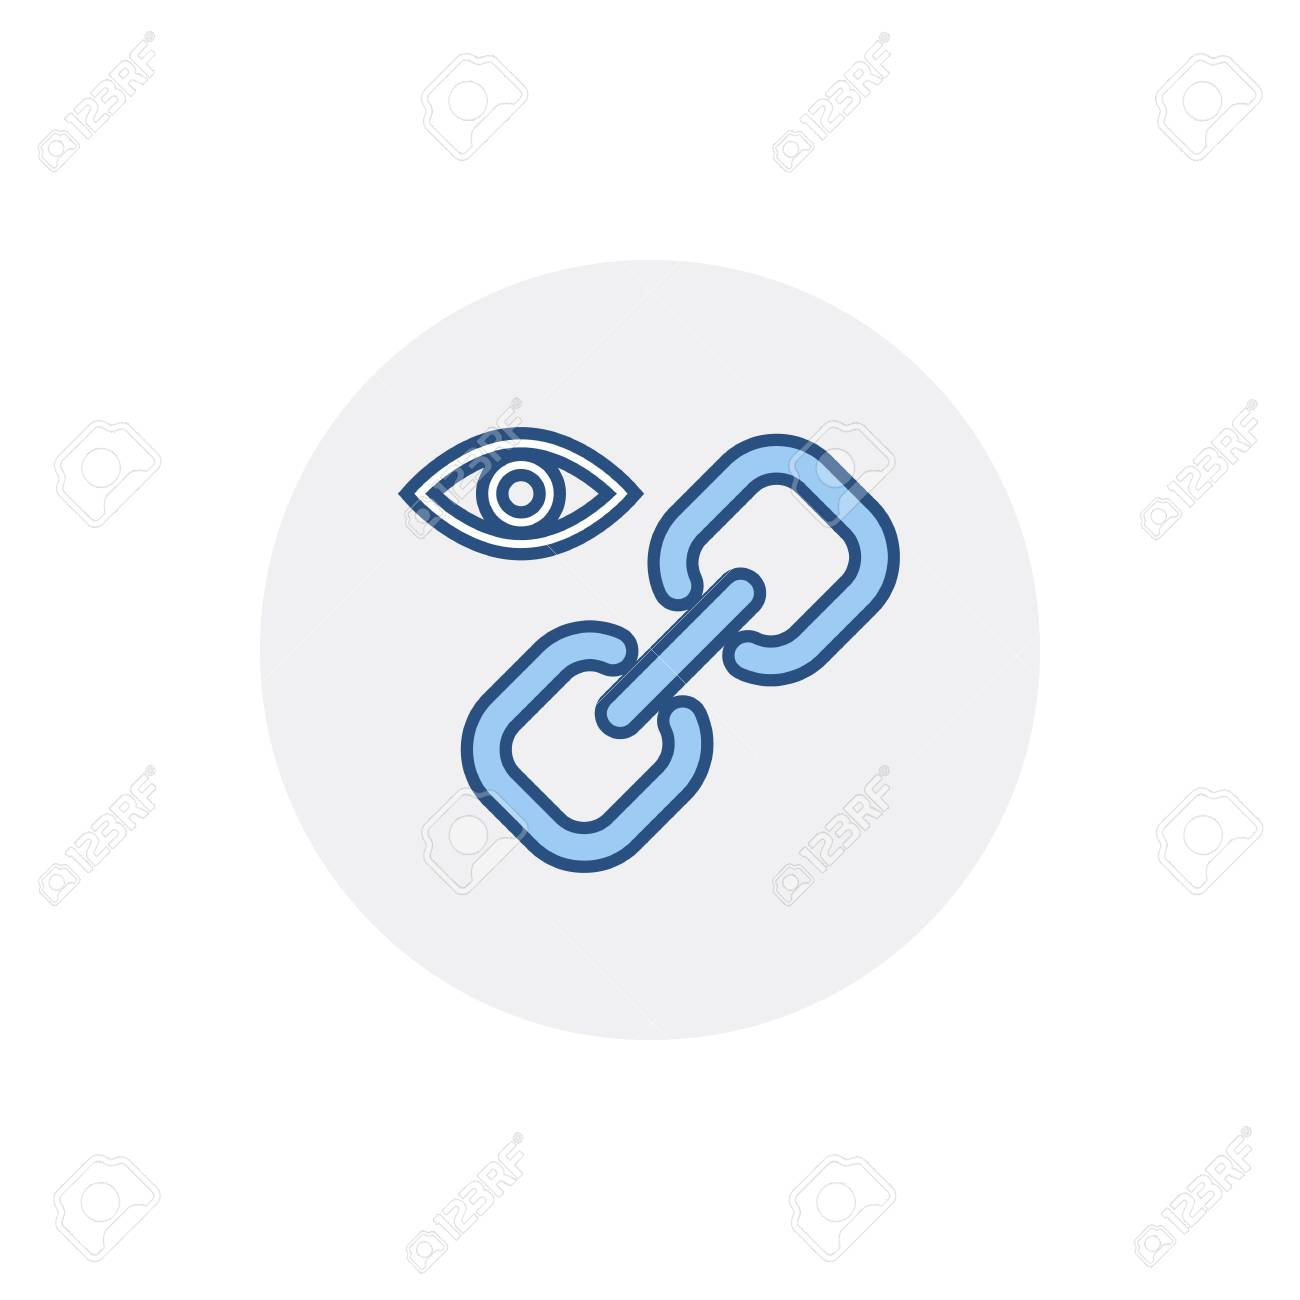 Chain Eye Hyperlink Internet Link Web Web Link Icon Vector Flat